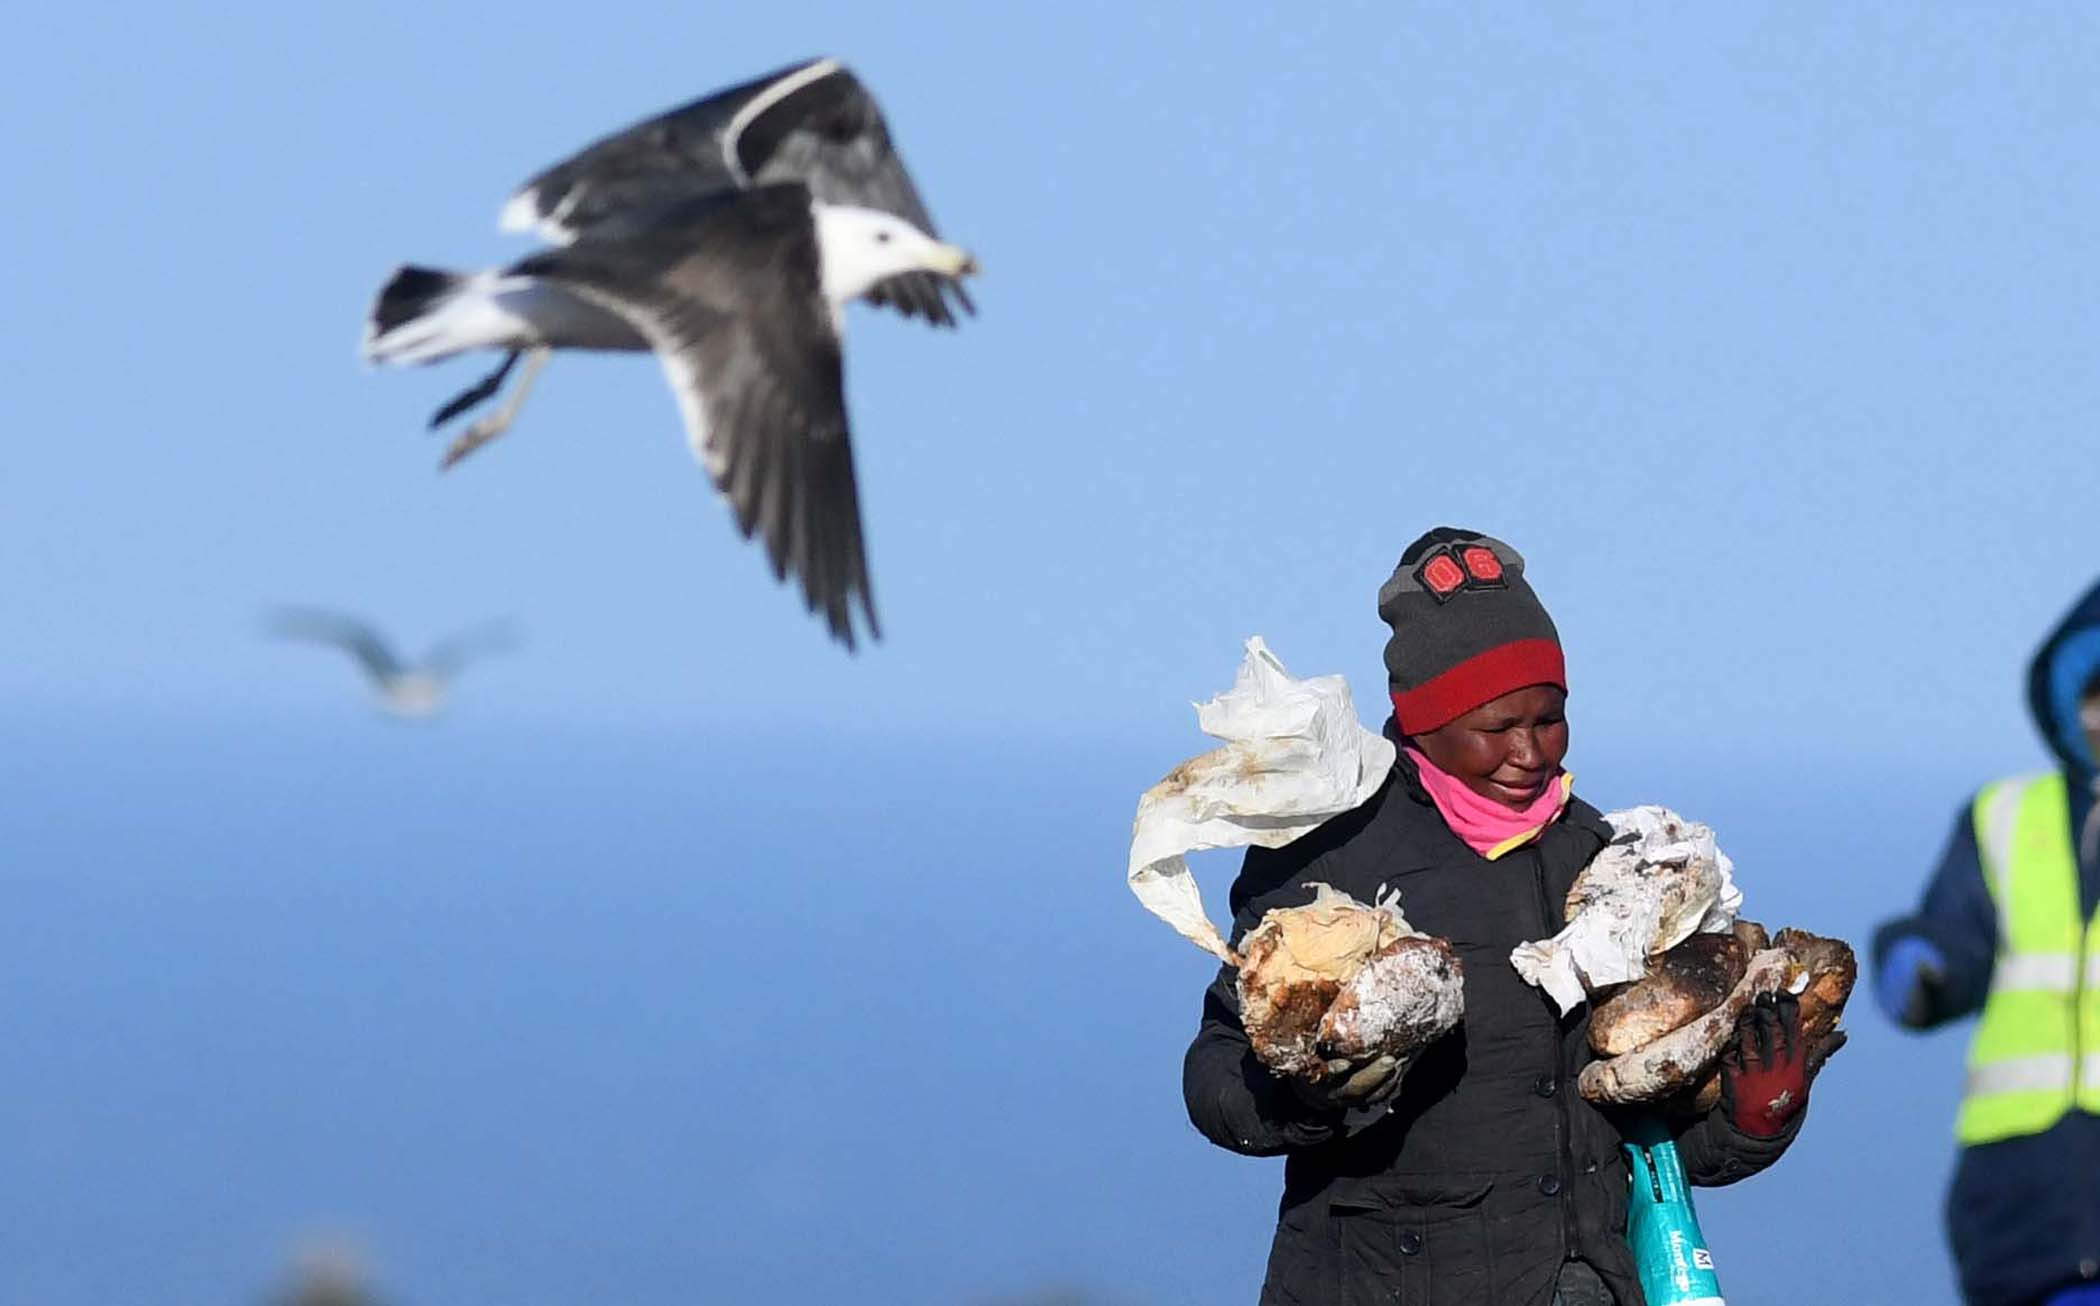 A woman happy for the stale bread she could salvage. PHOTO: Black Star/Spotlight